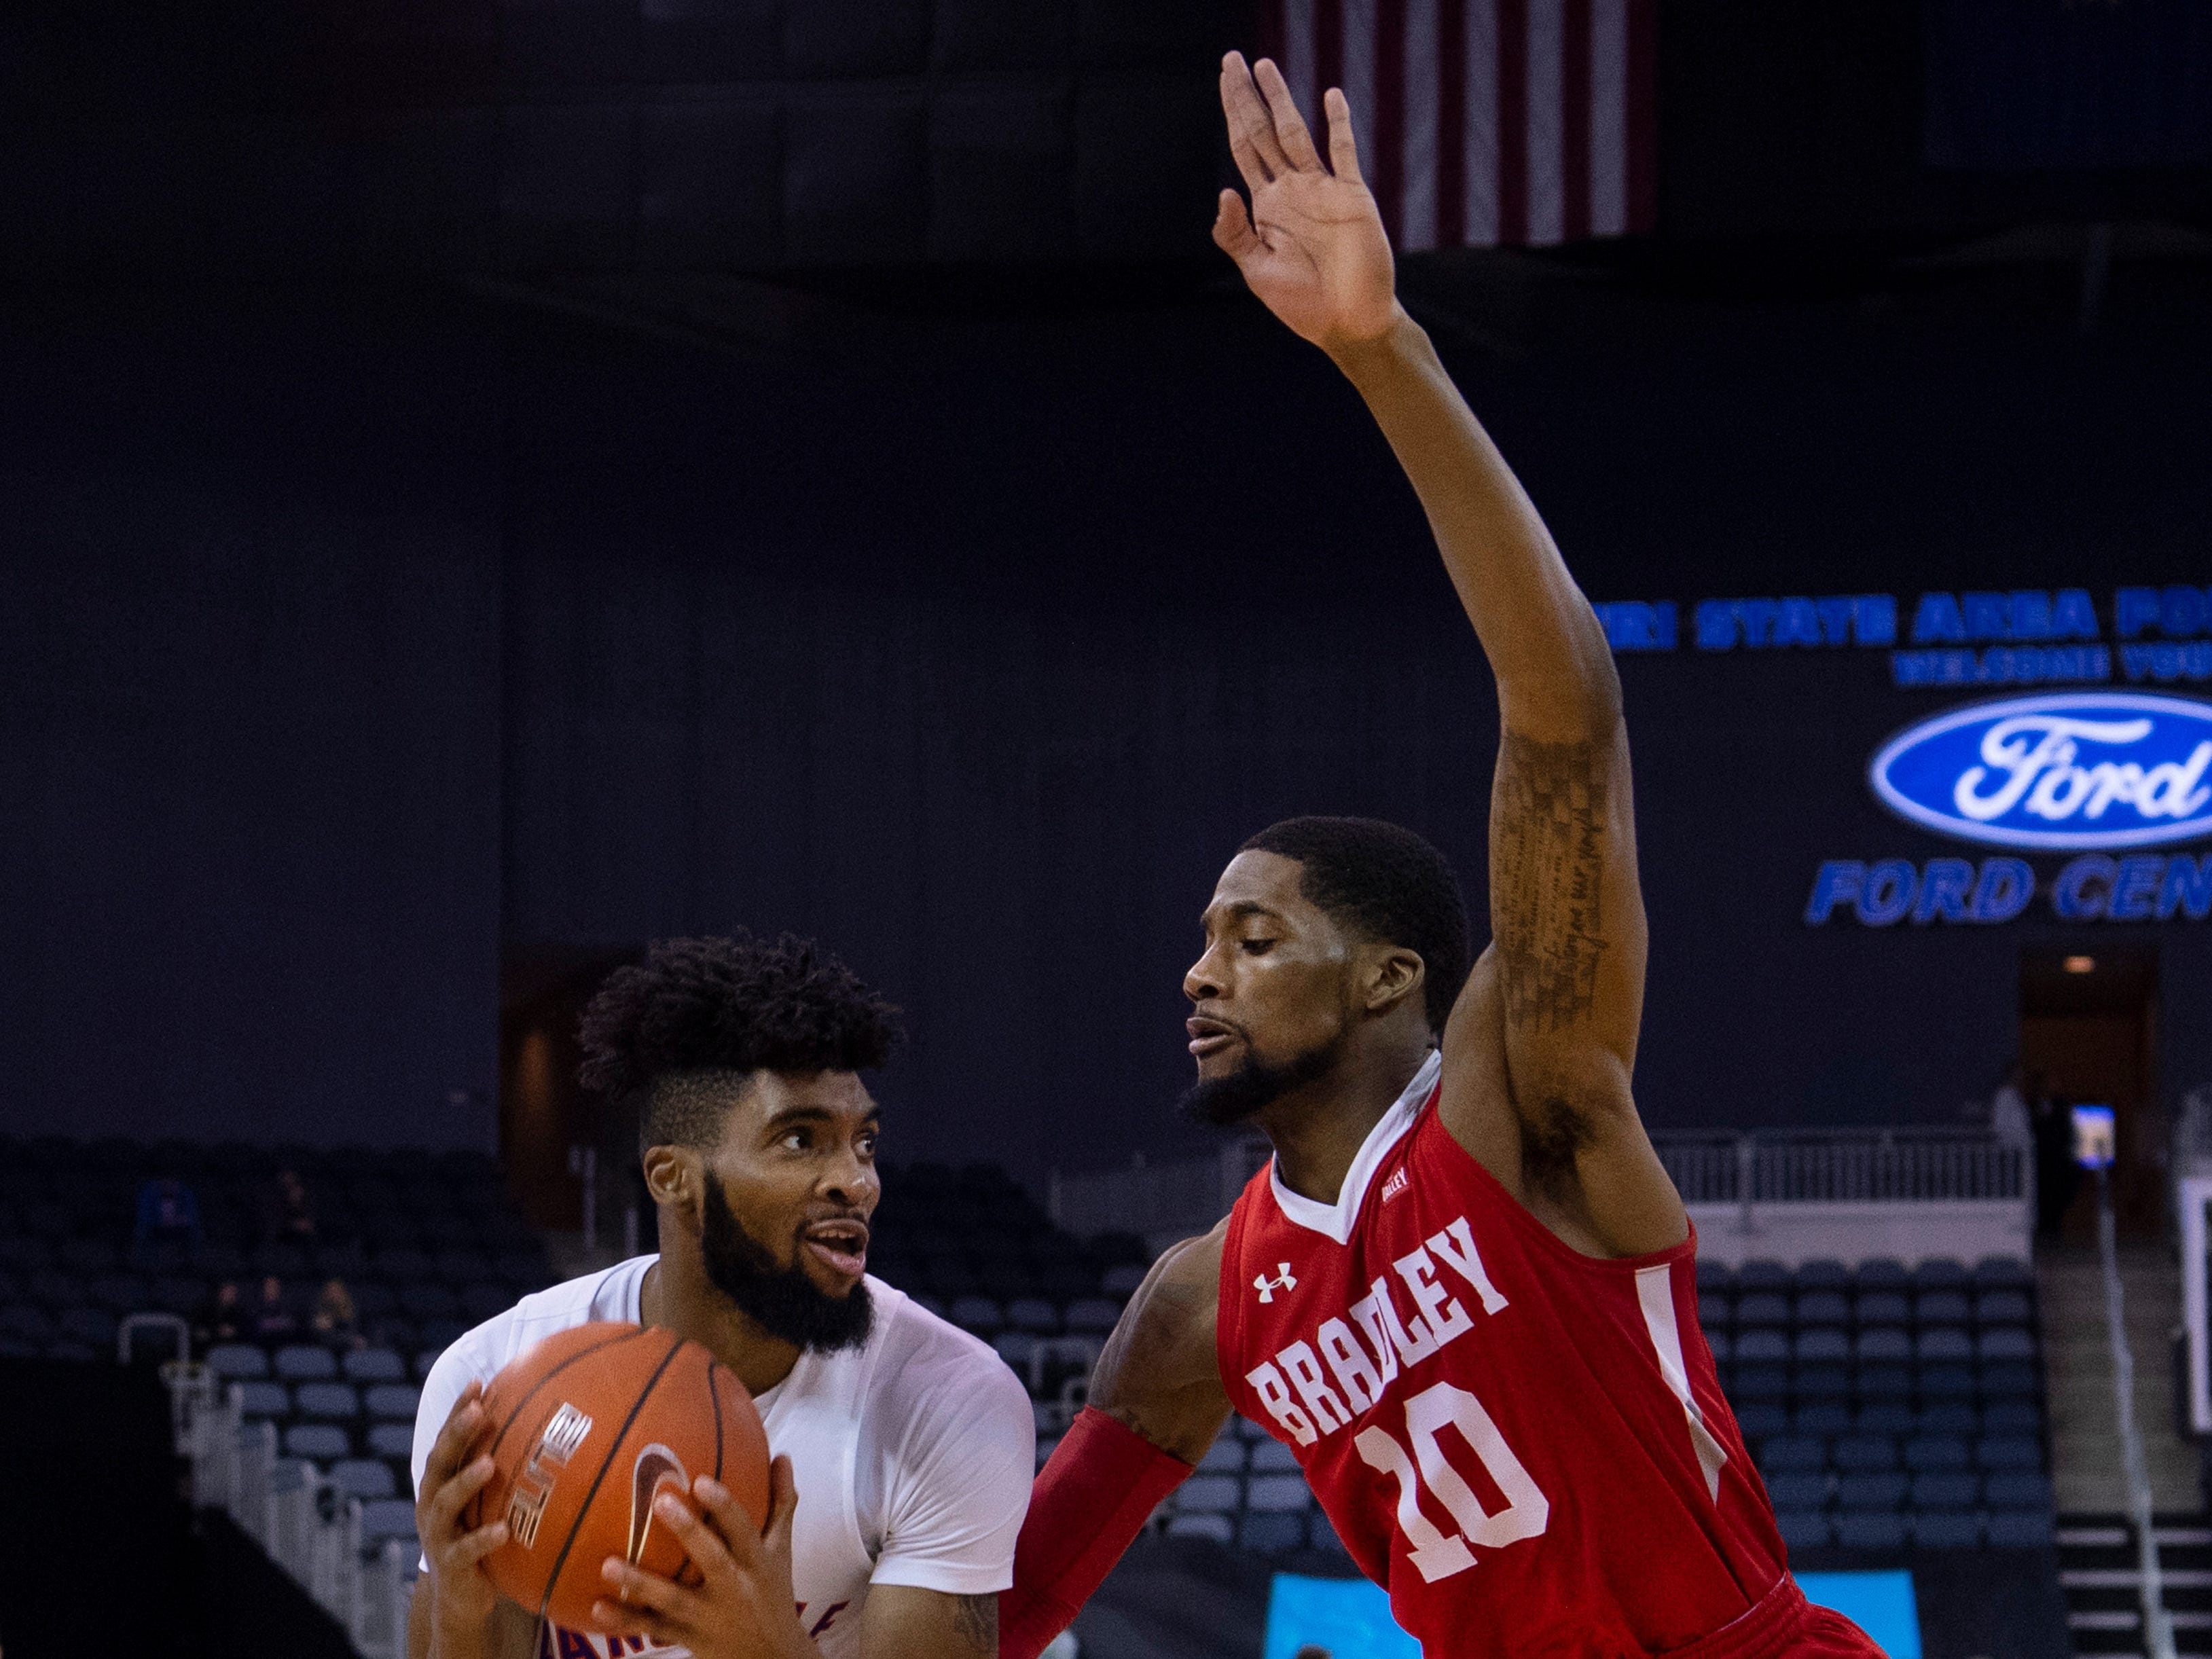 Evansville's K.J. Riley (33) drives past Bradley's Elijah Childs (10) for a basket and the foul during their game at the Ford Center Wednesday night.